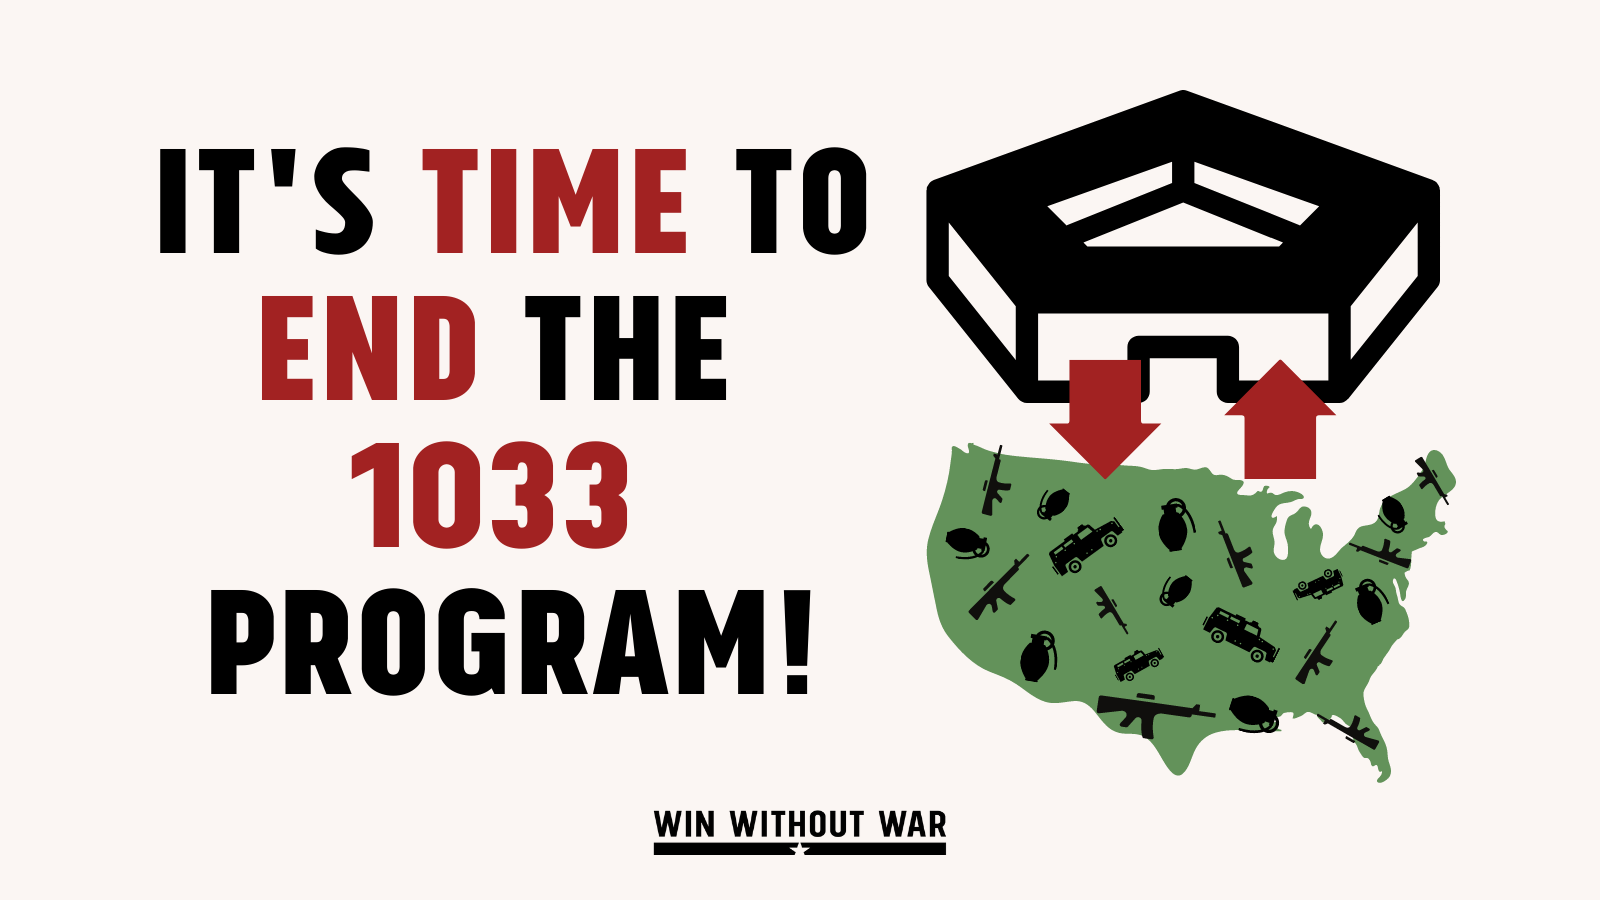 Congress: Stop Militarizing Our Communities!